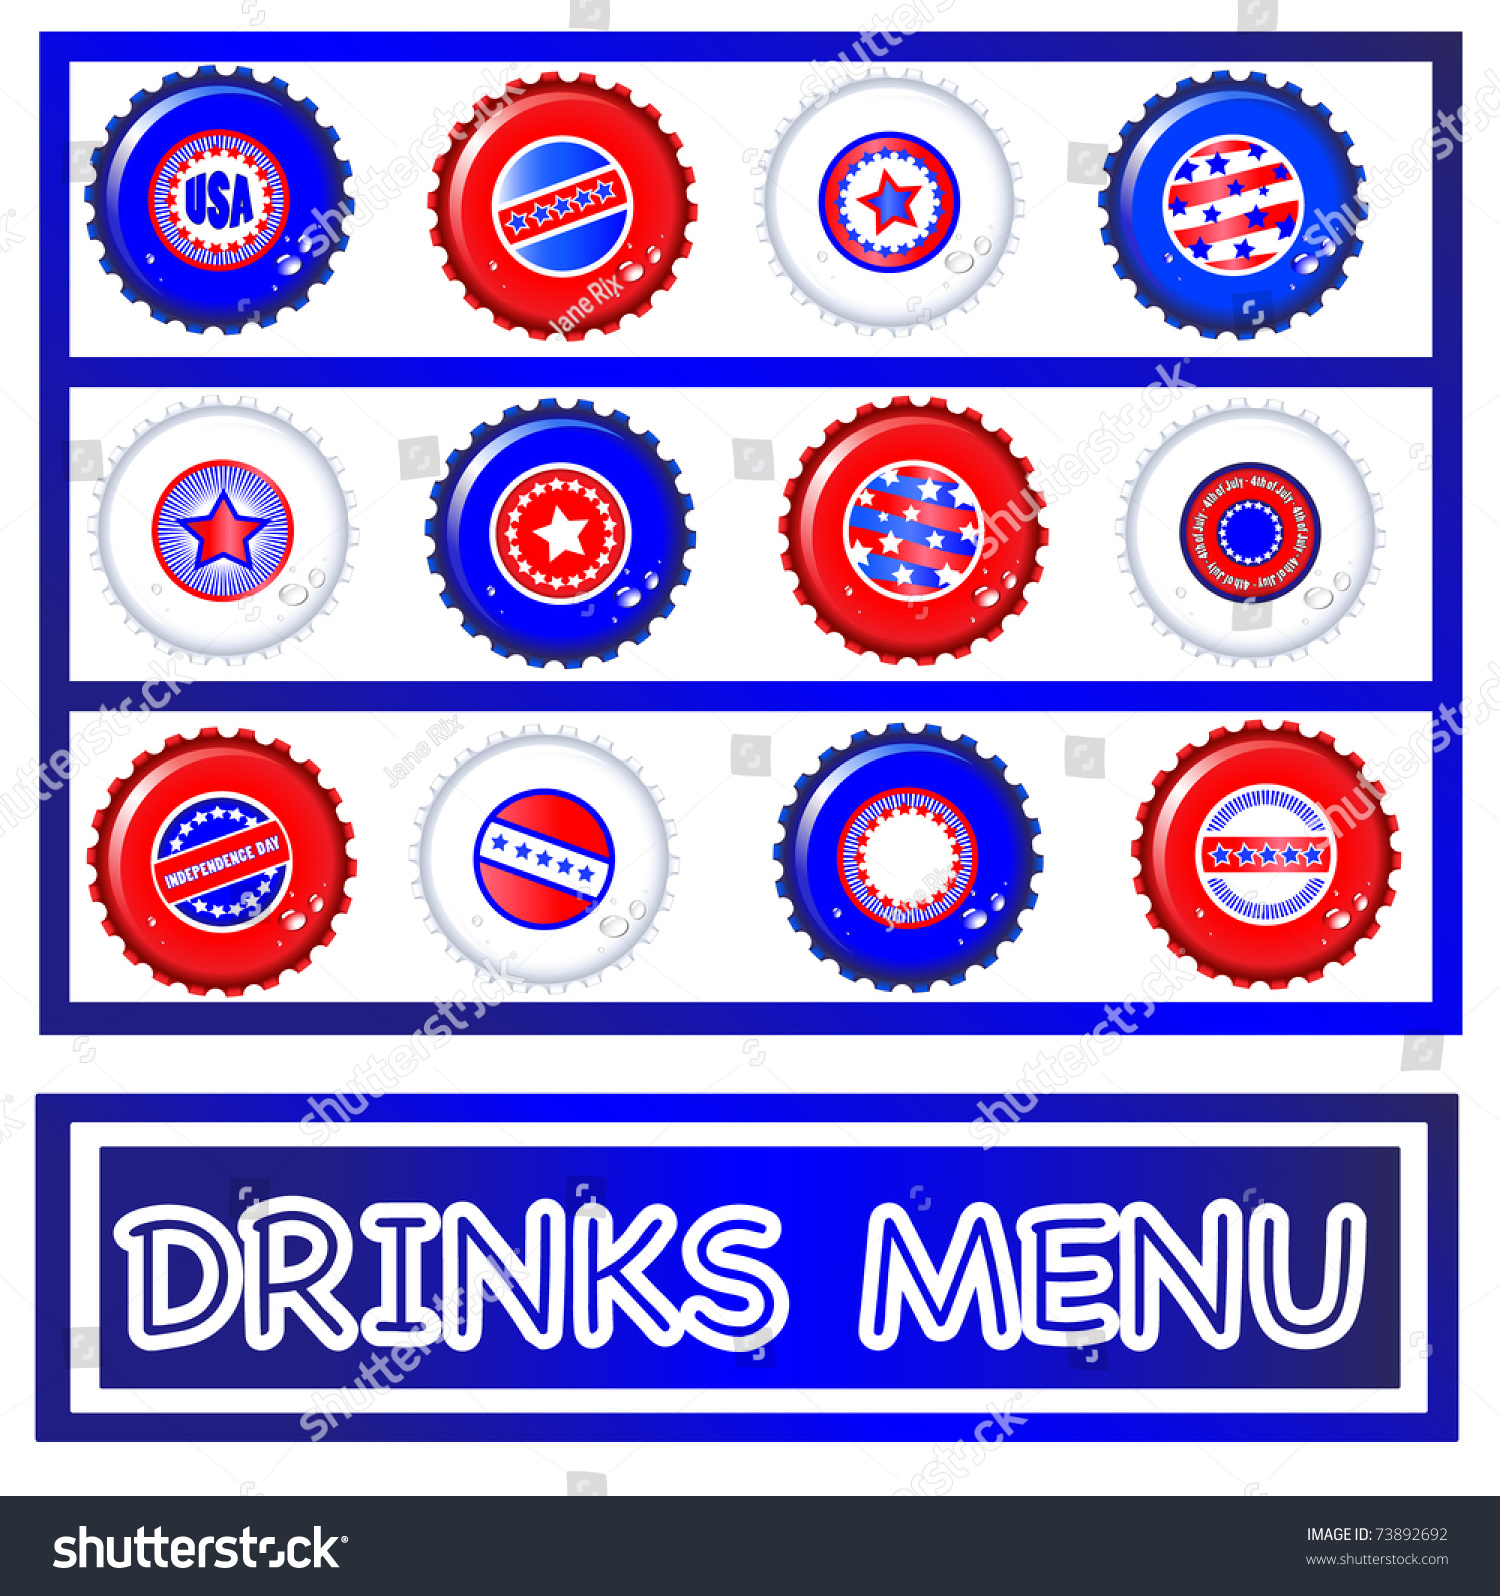 4th of july menu template - drinks menu template of stars stripes bottle caps usa